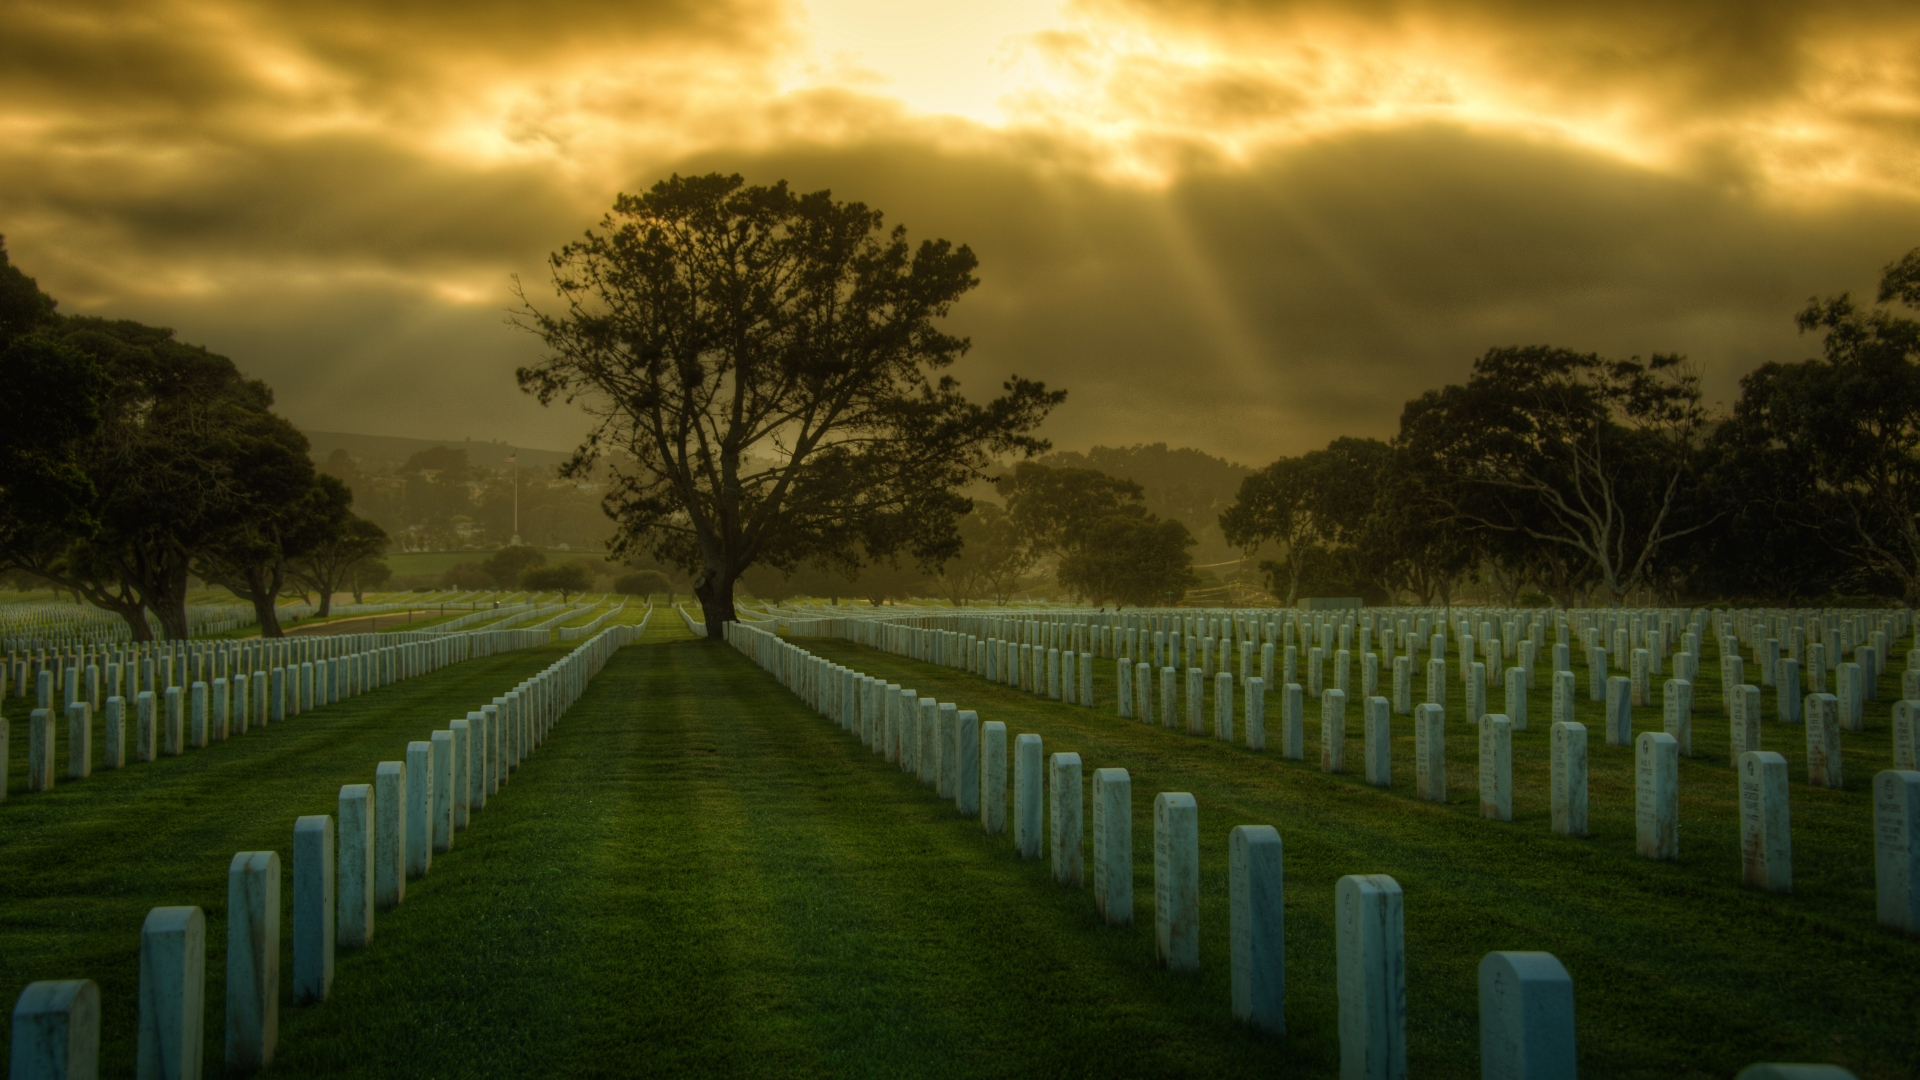 Hd Wallpapers Images: Cemetery Wallpapers, Pictures, Images